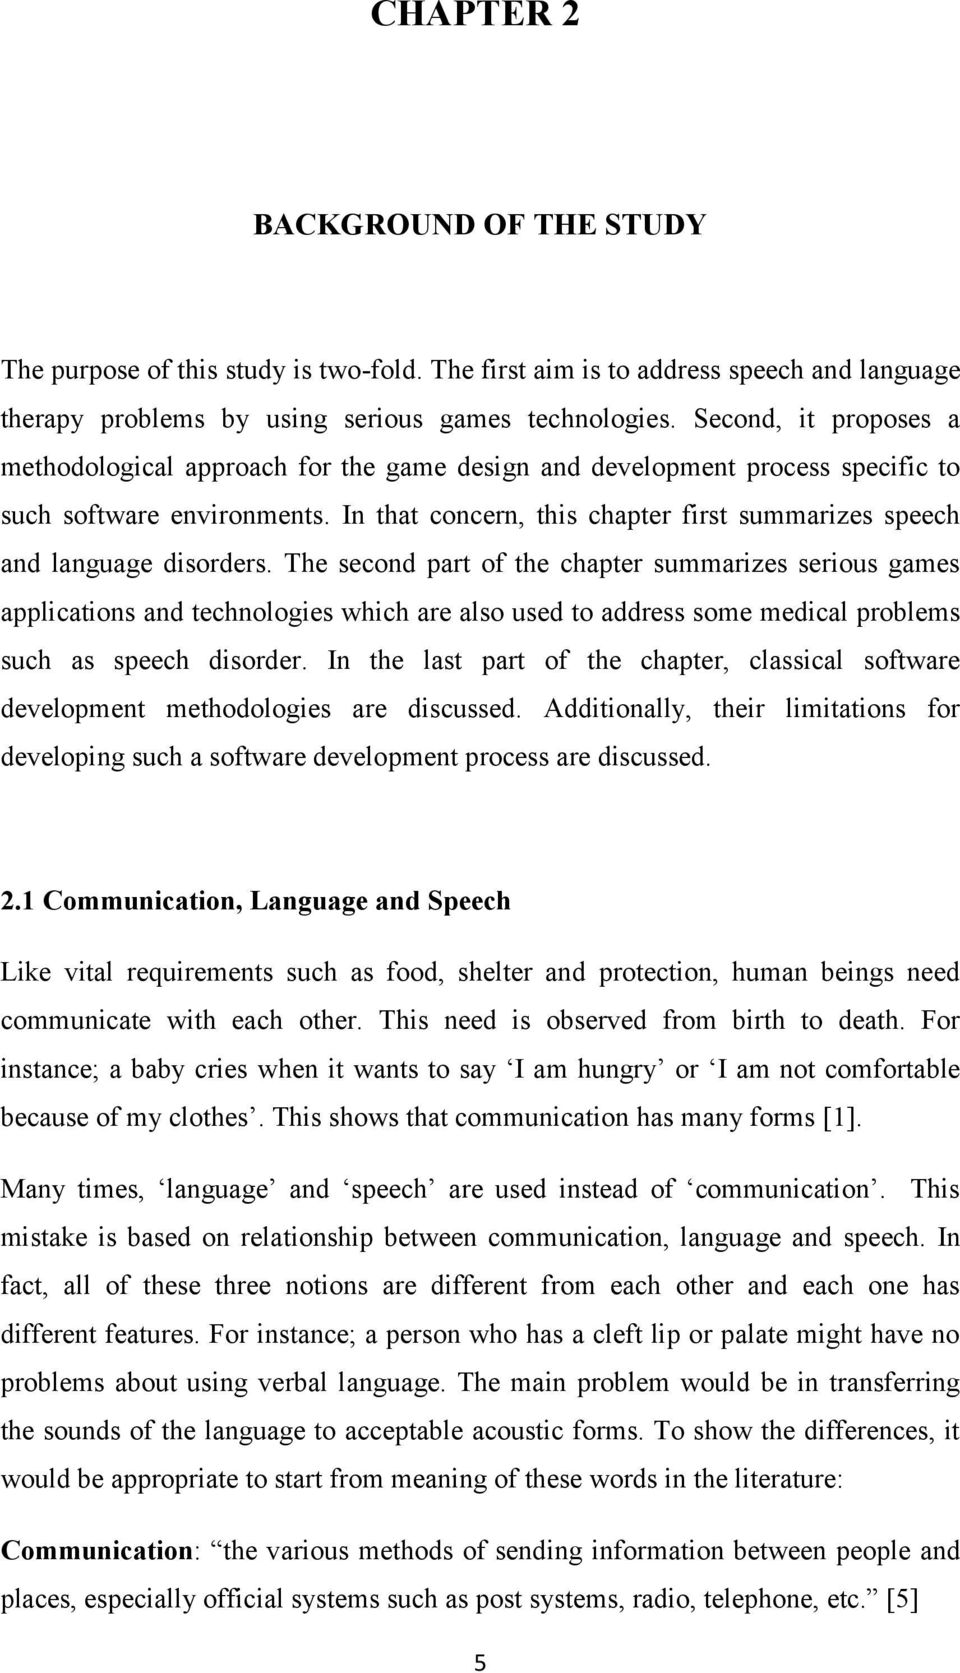 In that concern, this chapter first summarizes speech and language disorders.